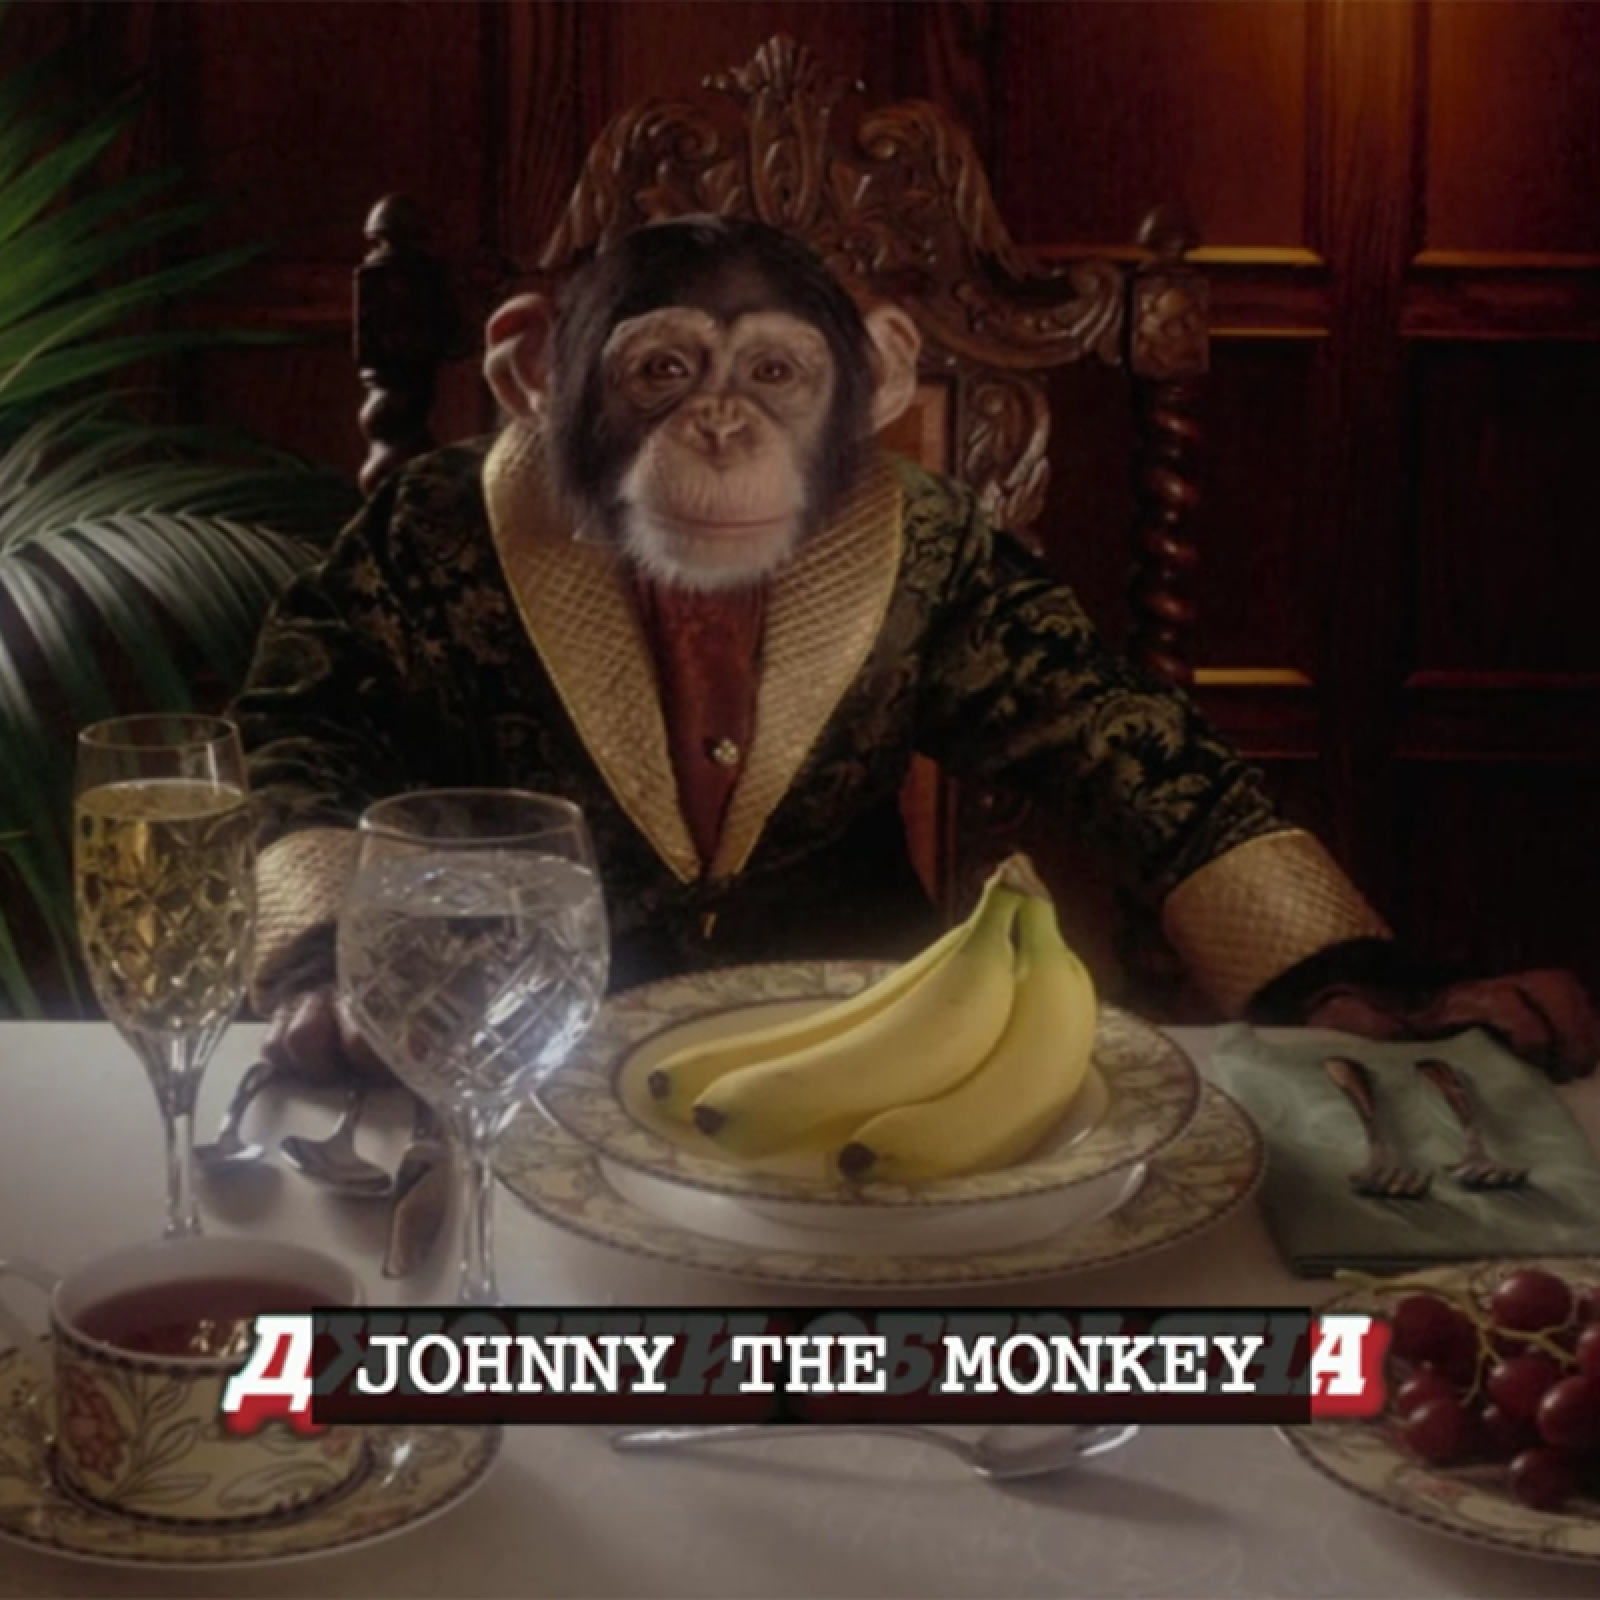 Borat 2' Star Johnny the Monkey Has a Hilarious Fake Website